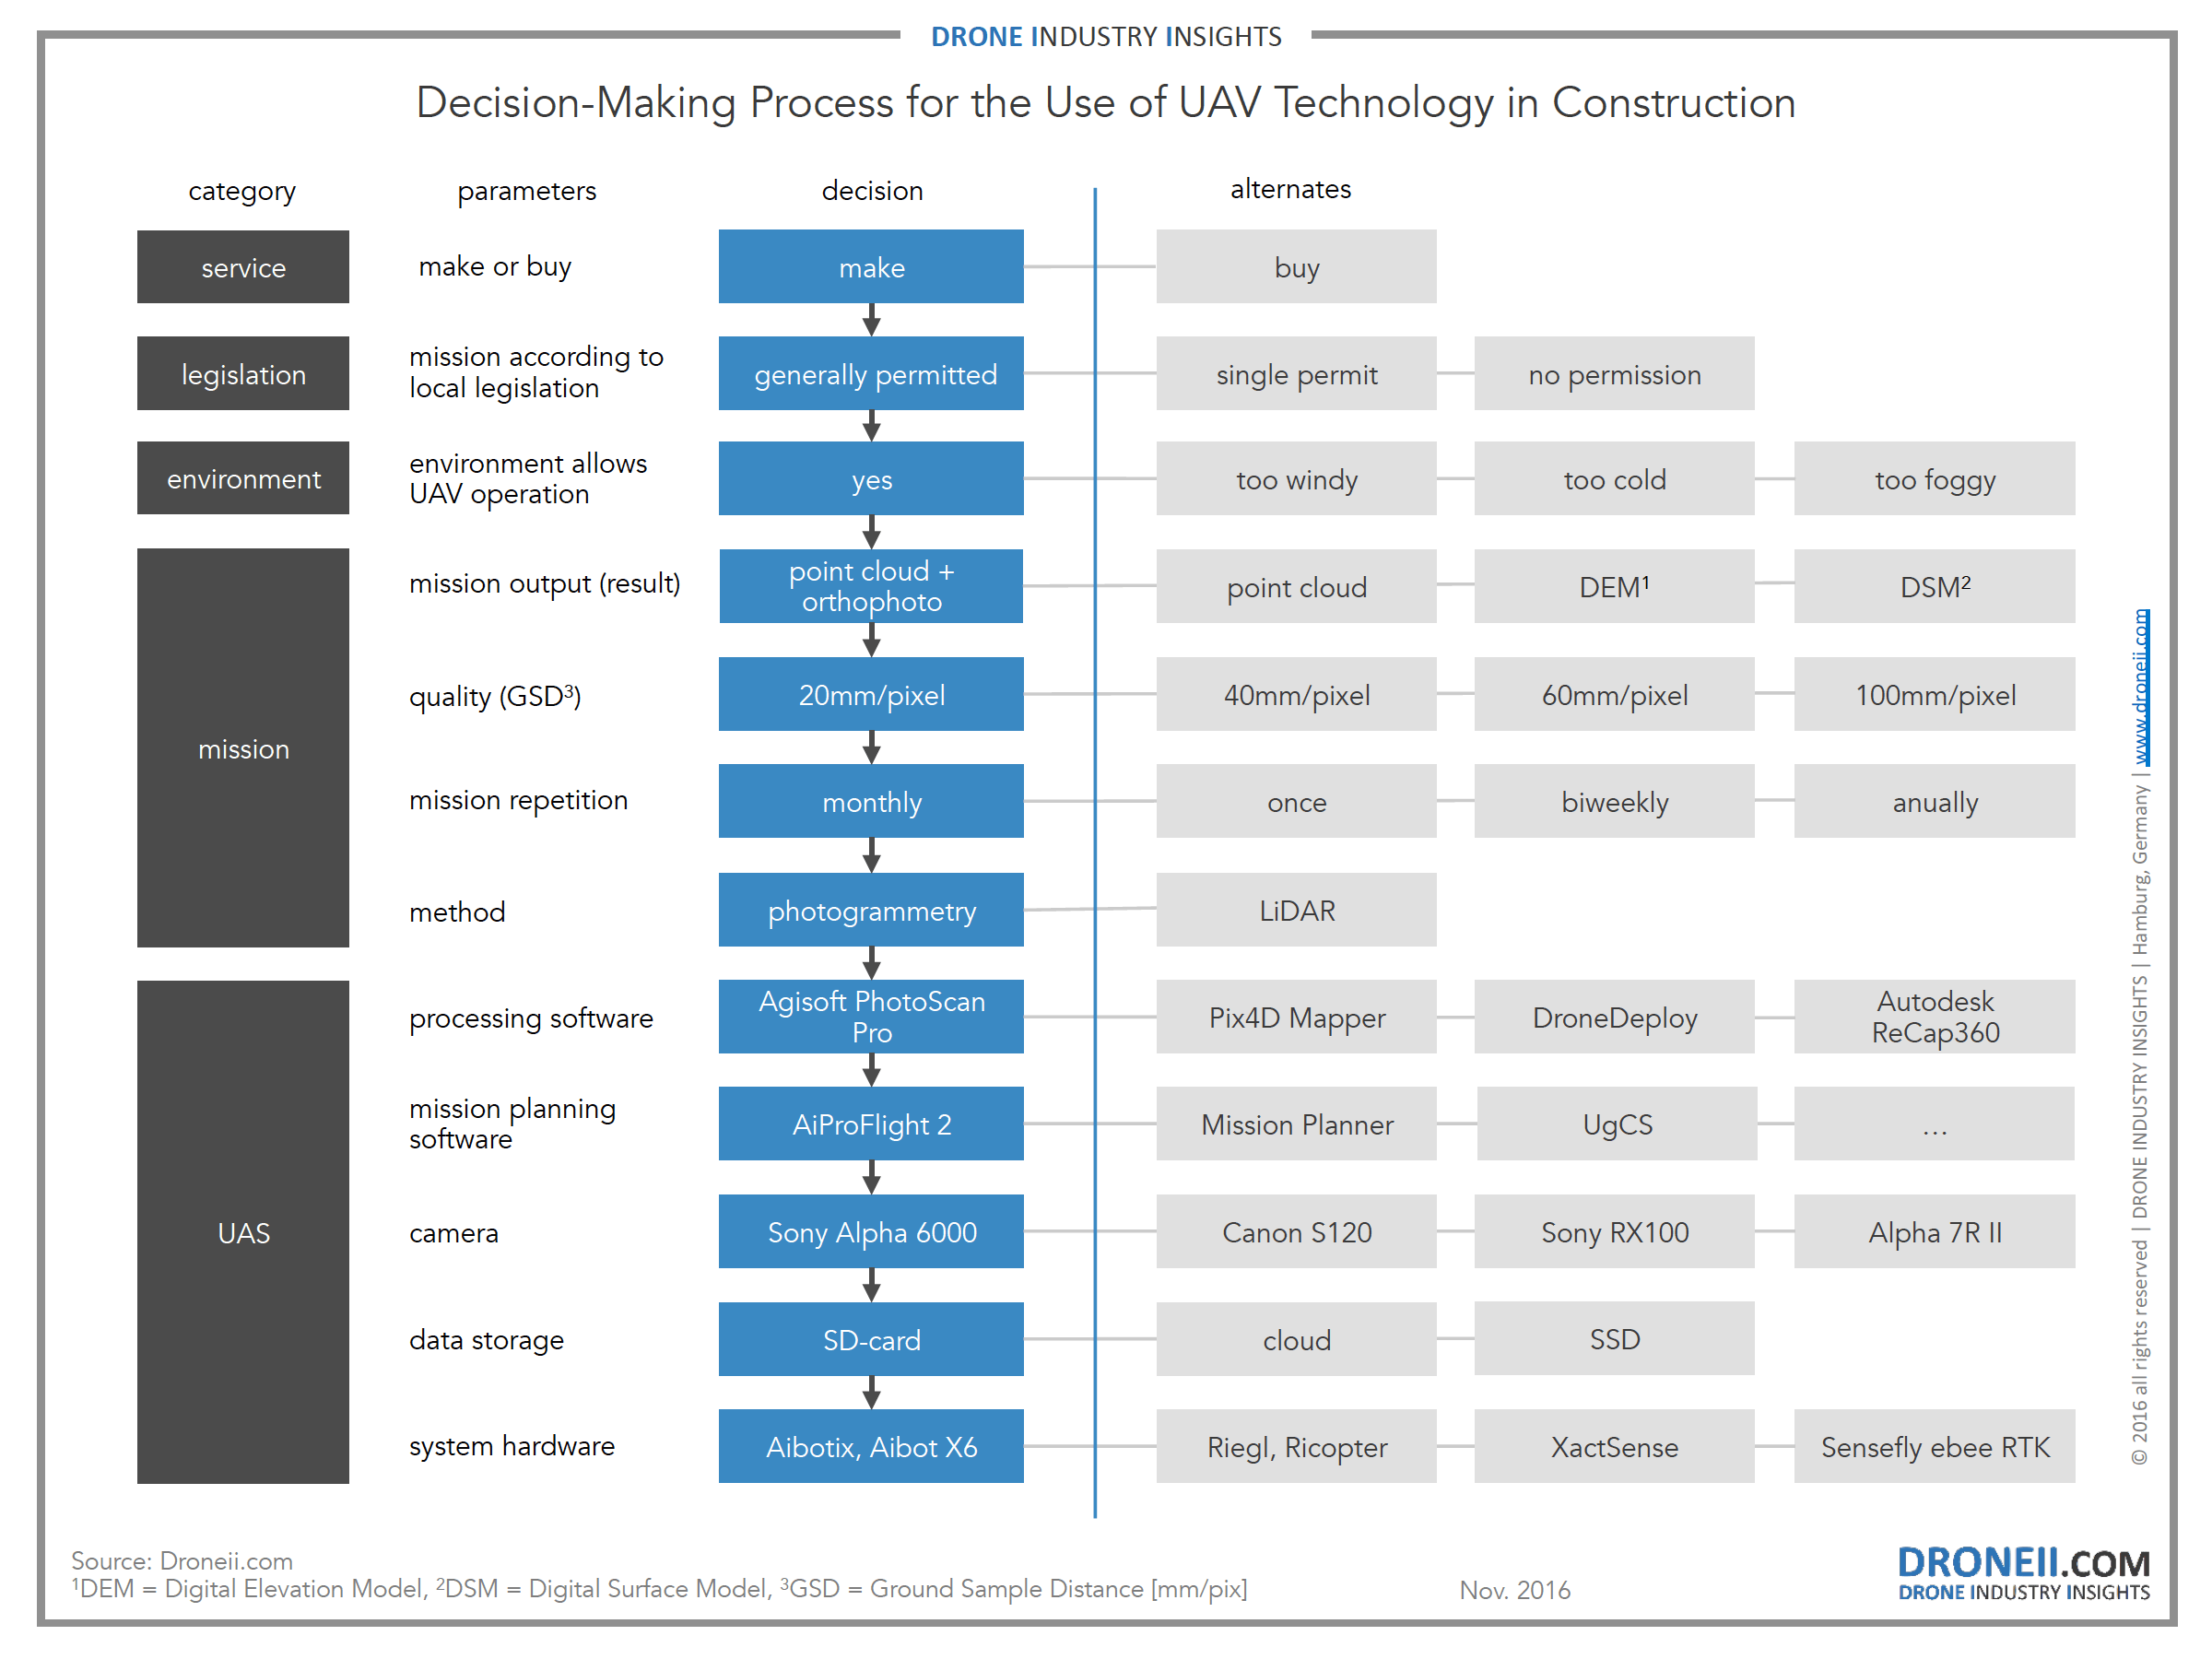 value chain analysis of uavbased surveying drone